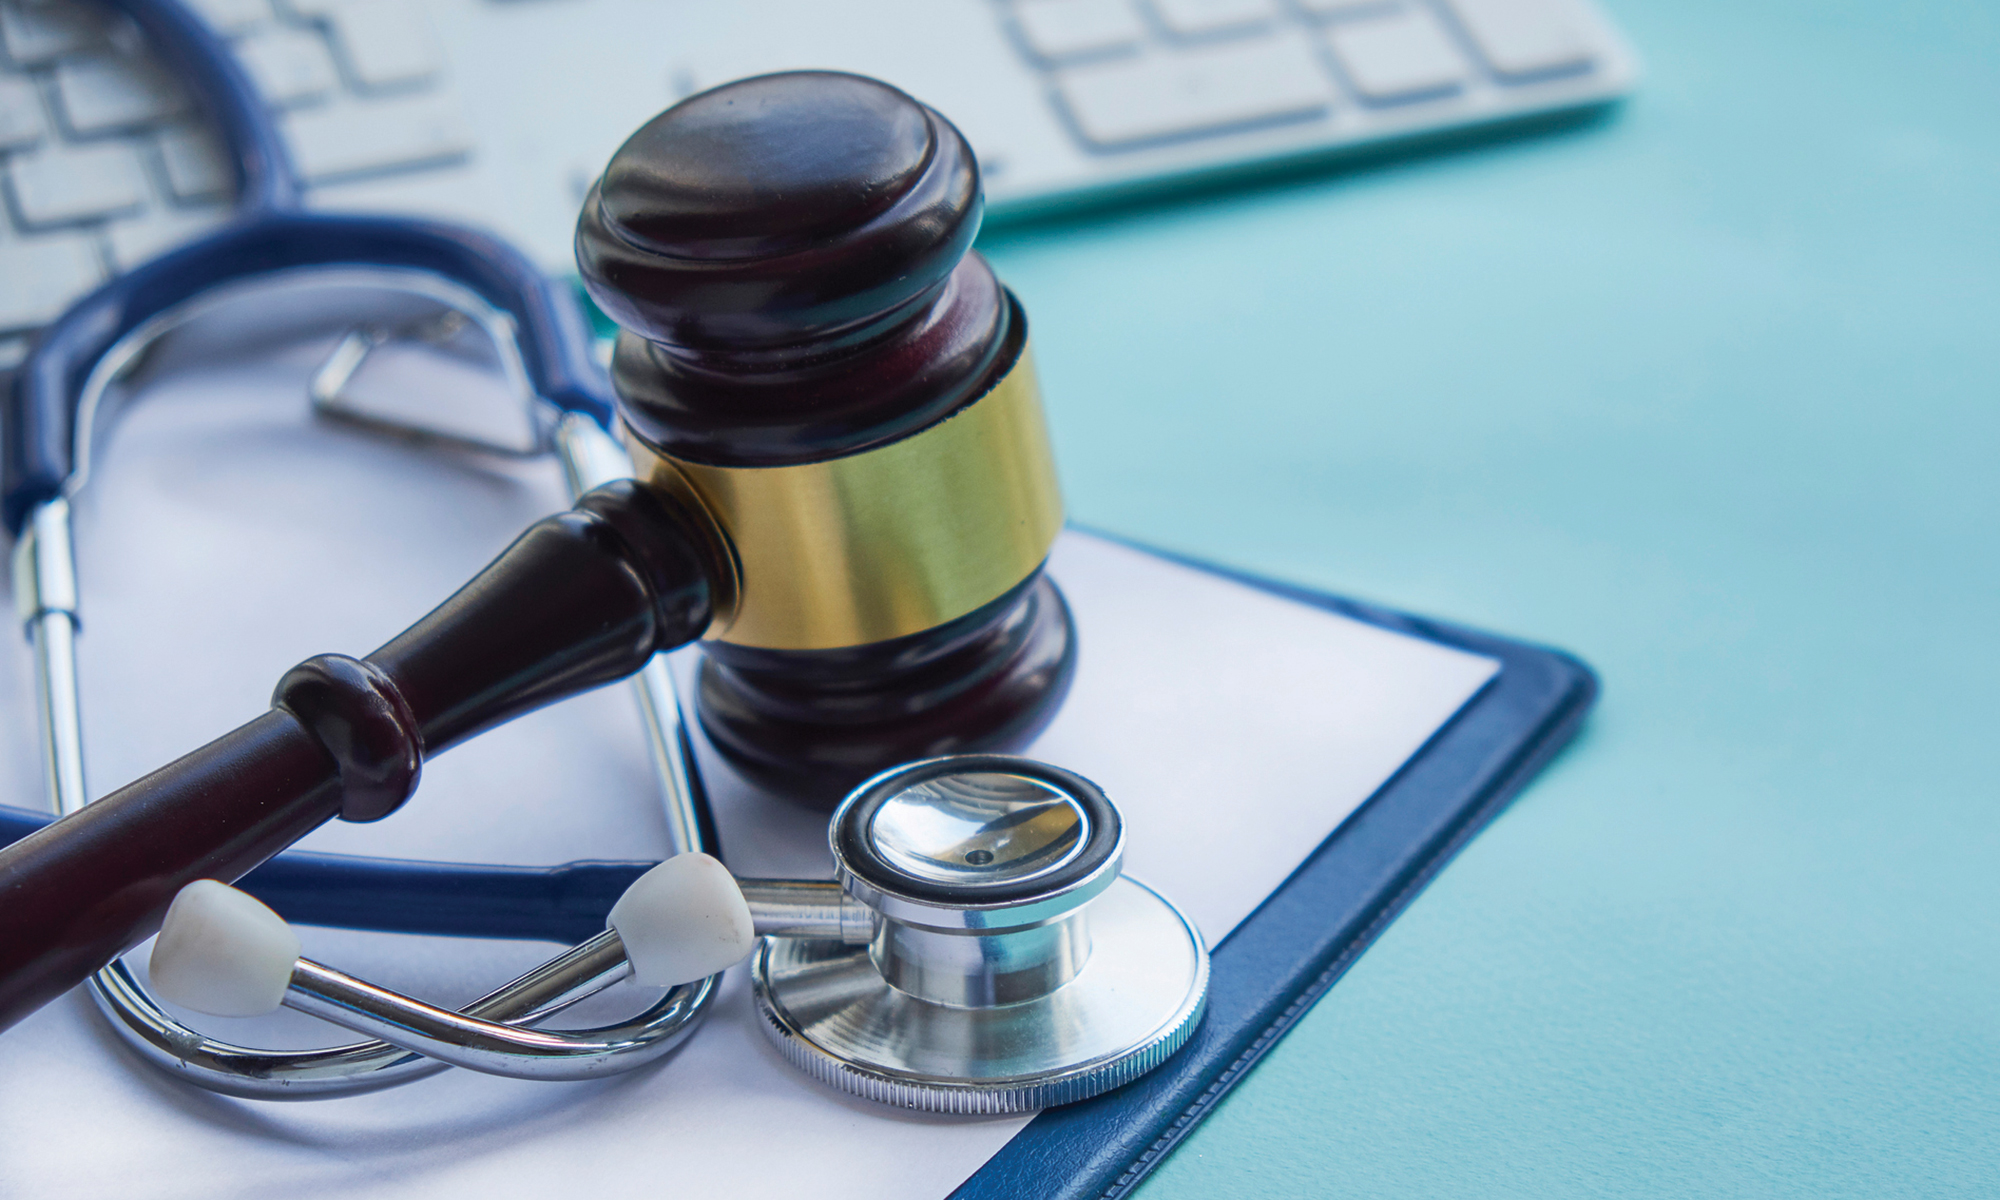 medical-malpractice-lawyer Factors to Consider When Choosing a Medical Negligence Solicitor